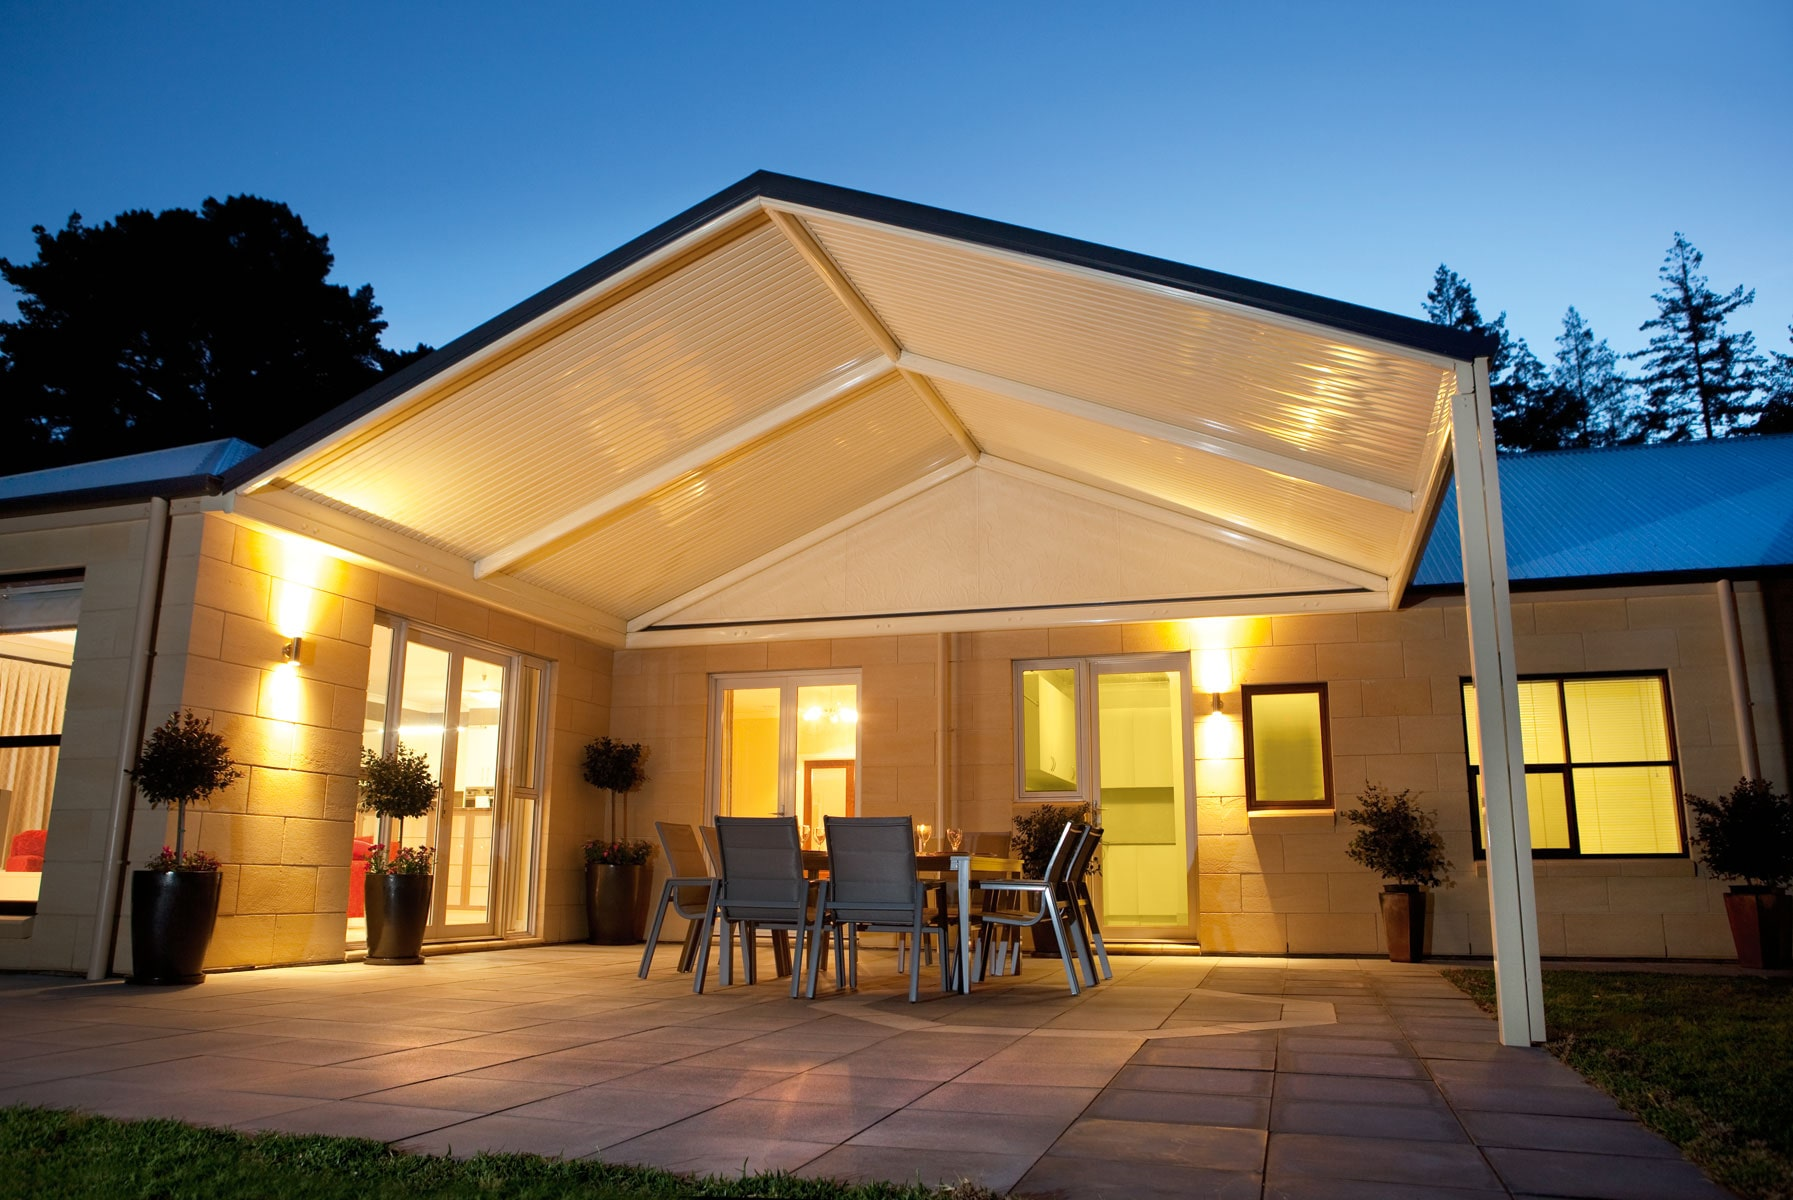 Verandahs Adelaide - Installing a Verandah may increase your property worth